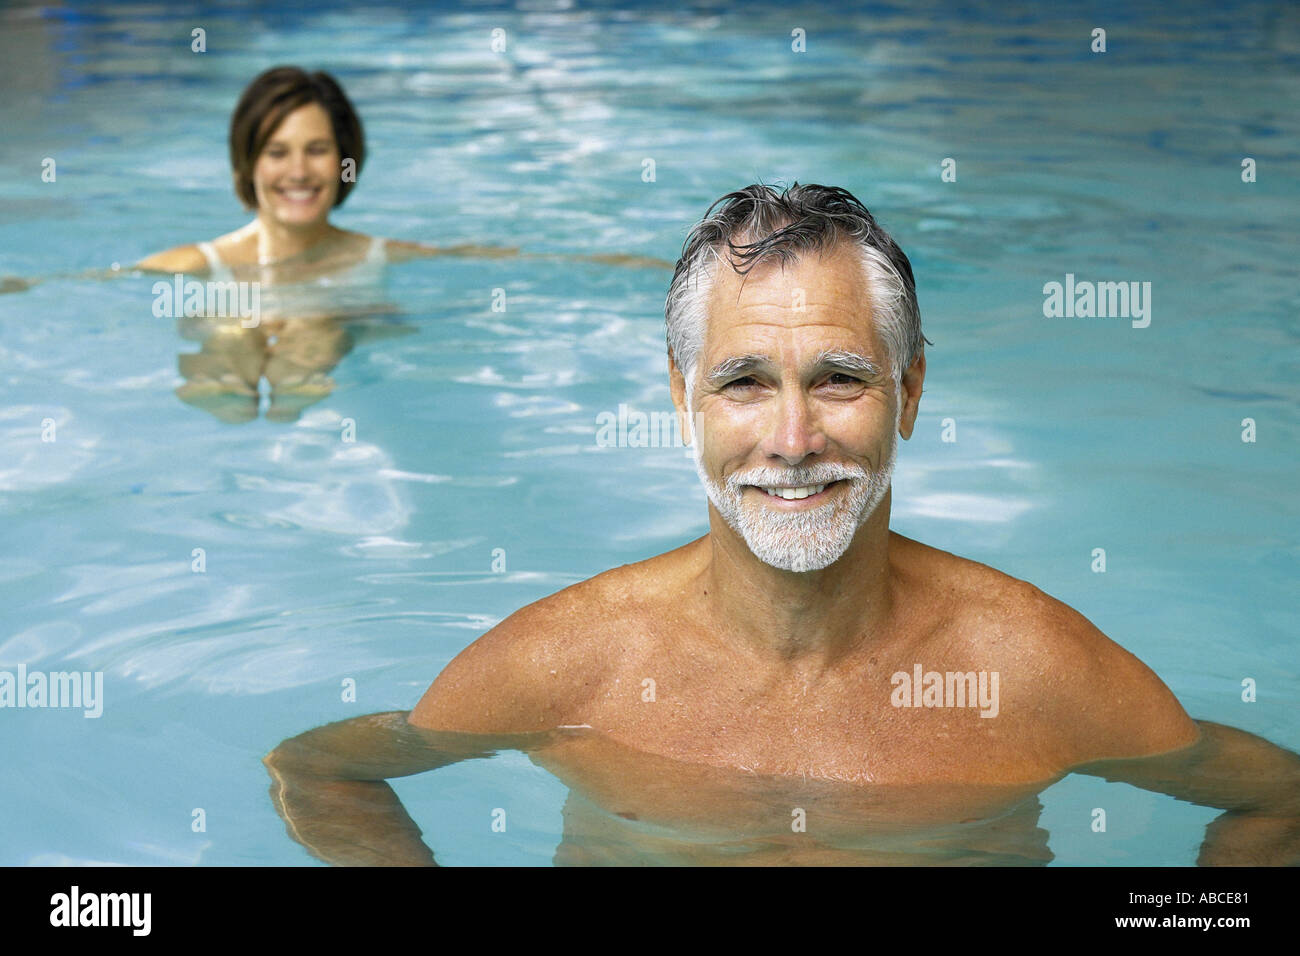 Man and woman in swimming pool - Stock Image